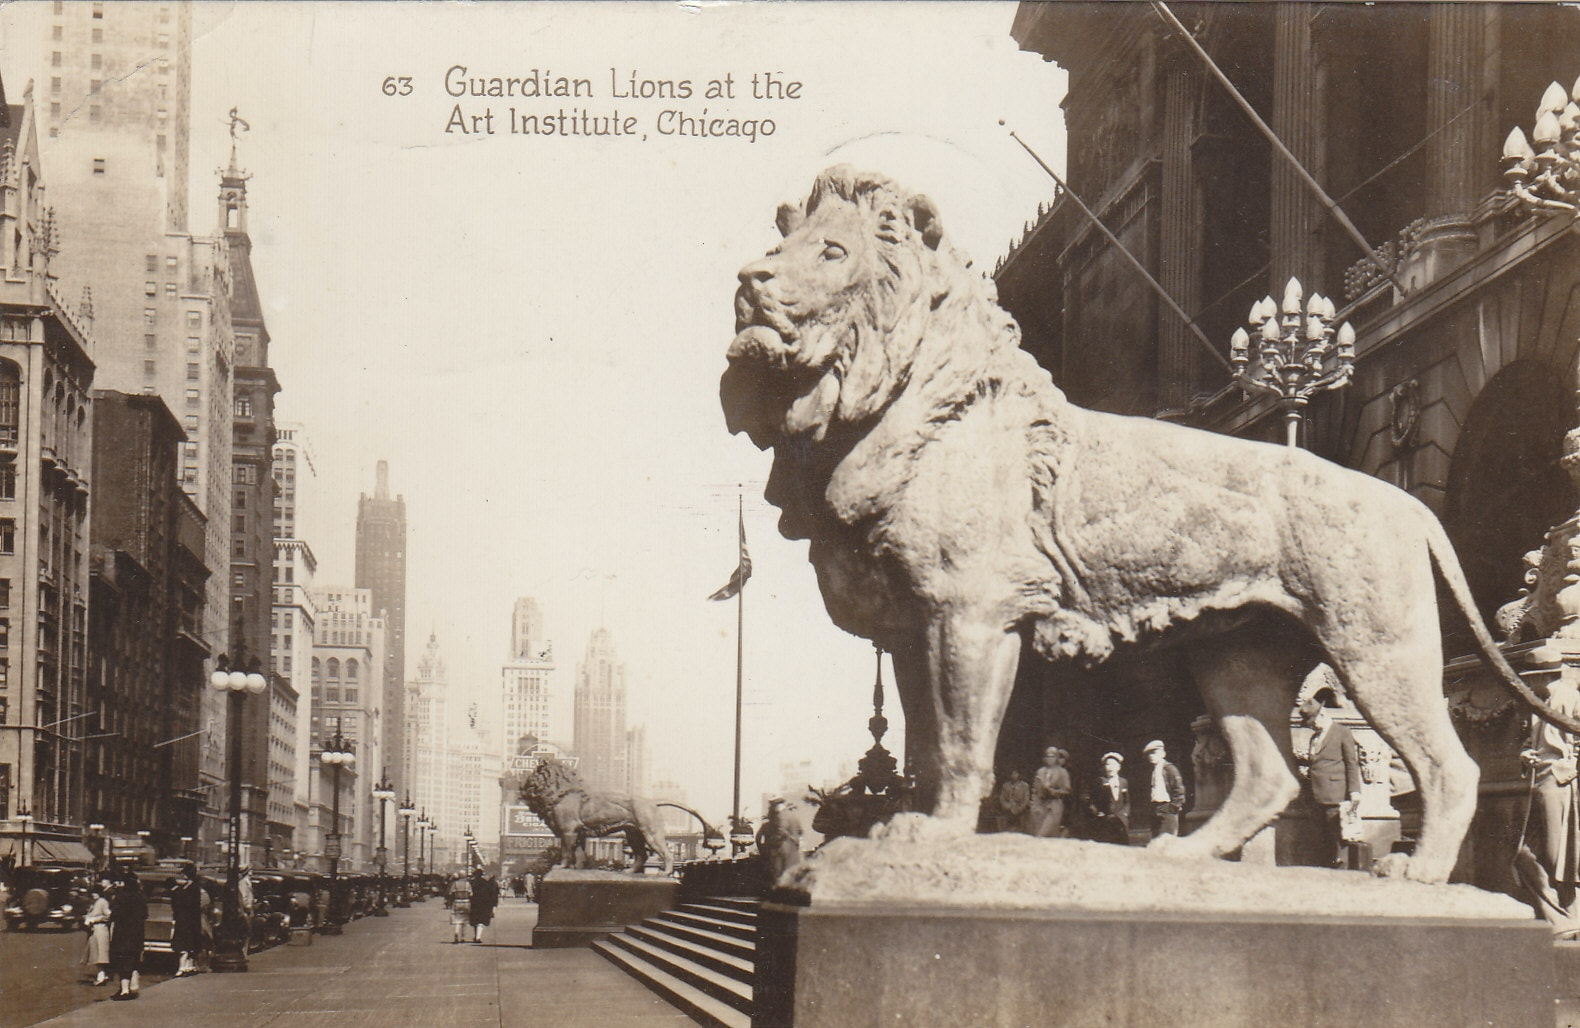 Photo of Art Institute south lion from 1933 postcard